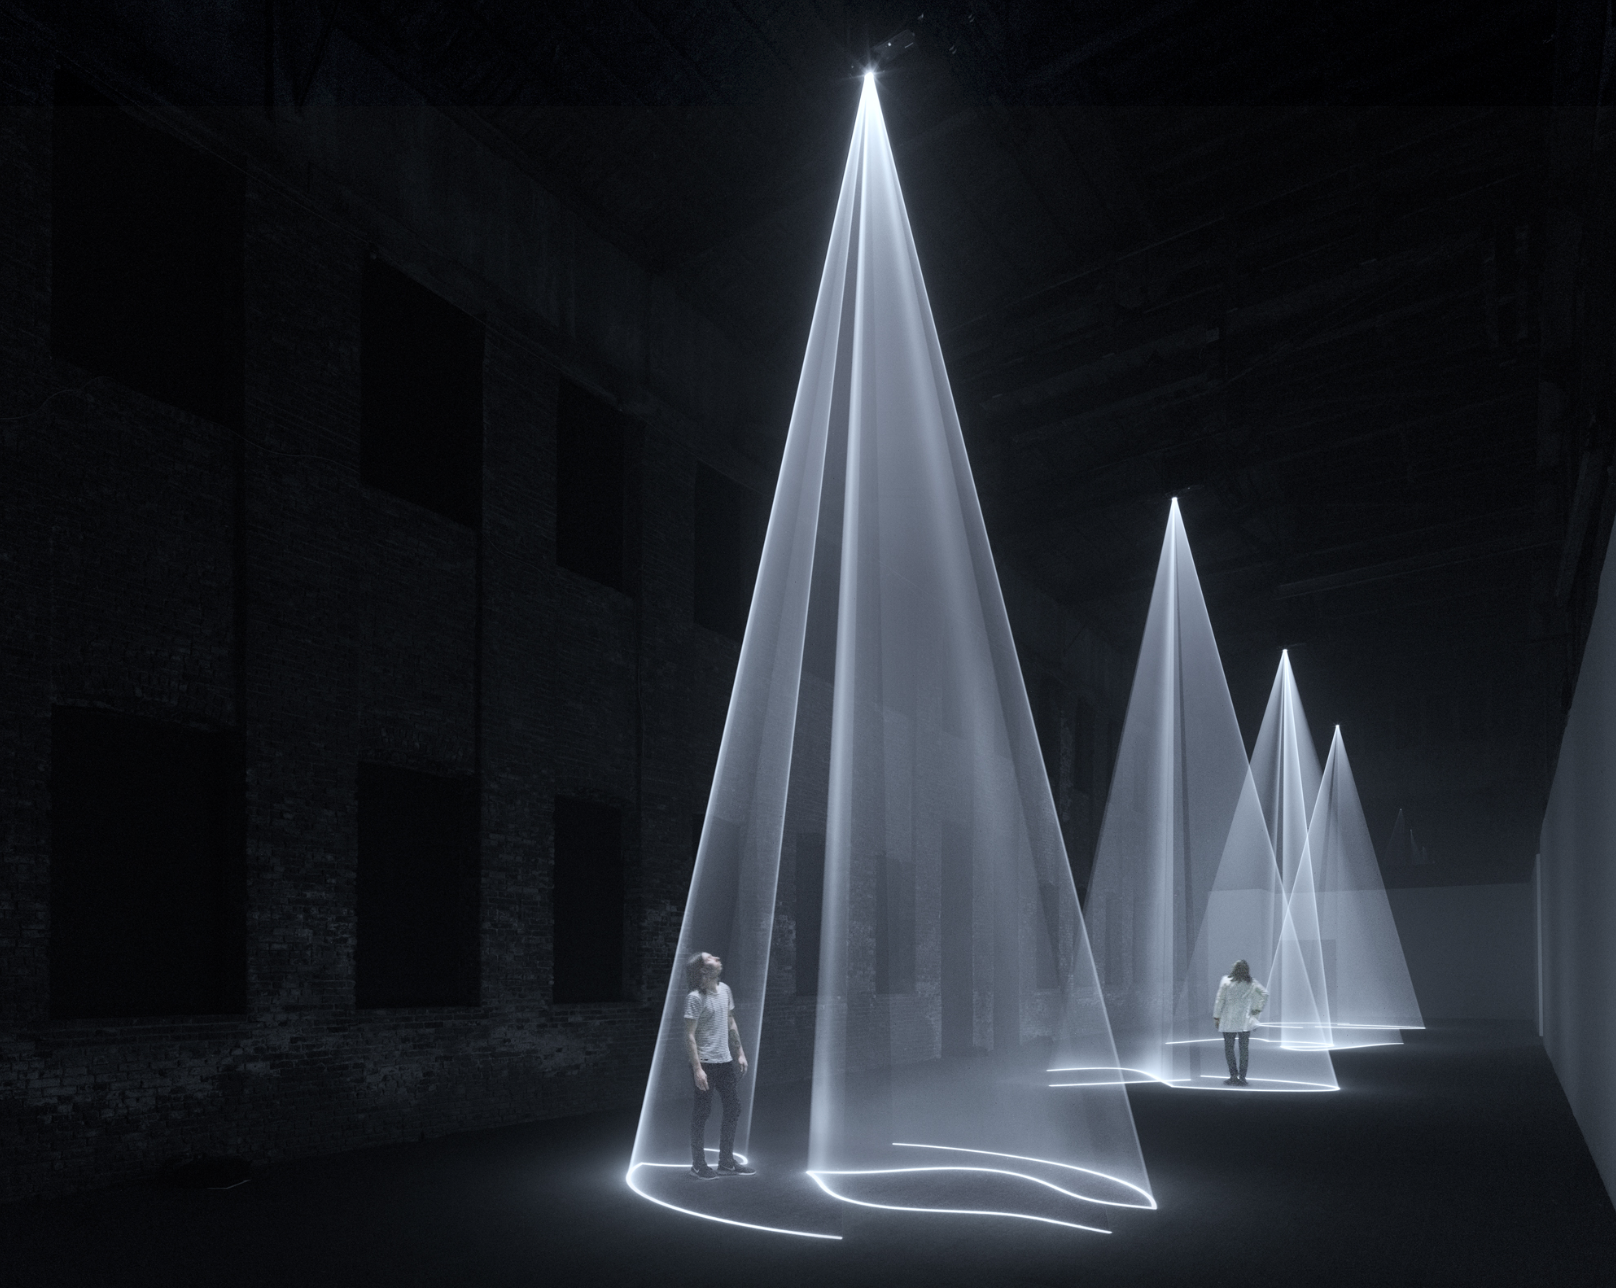 Anthony McCall, Solid Light Works, 2018. Image courtesy of Anthony McCall, Sean Kelly Gallery,and Pioneer Works.